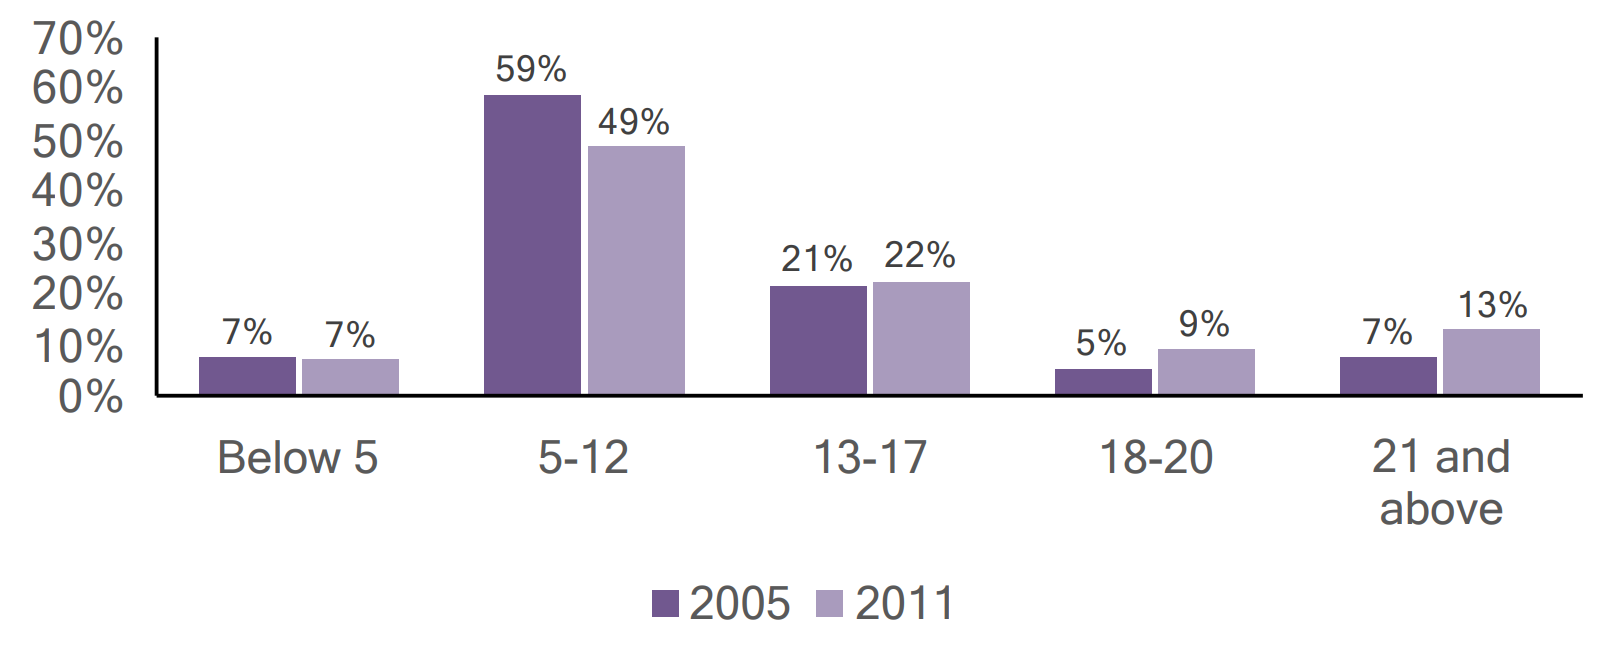 Bar graph of individuals with autism in Franklin county by age, comparing 2005 and 2011 data.